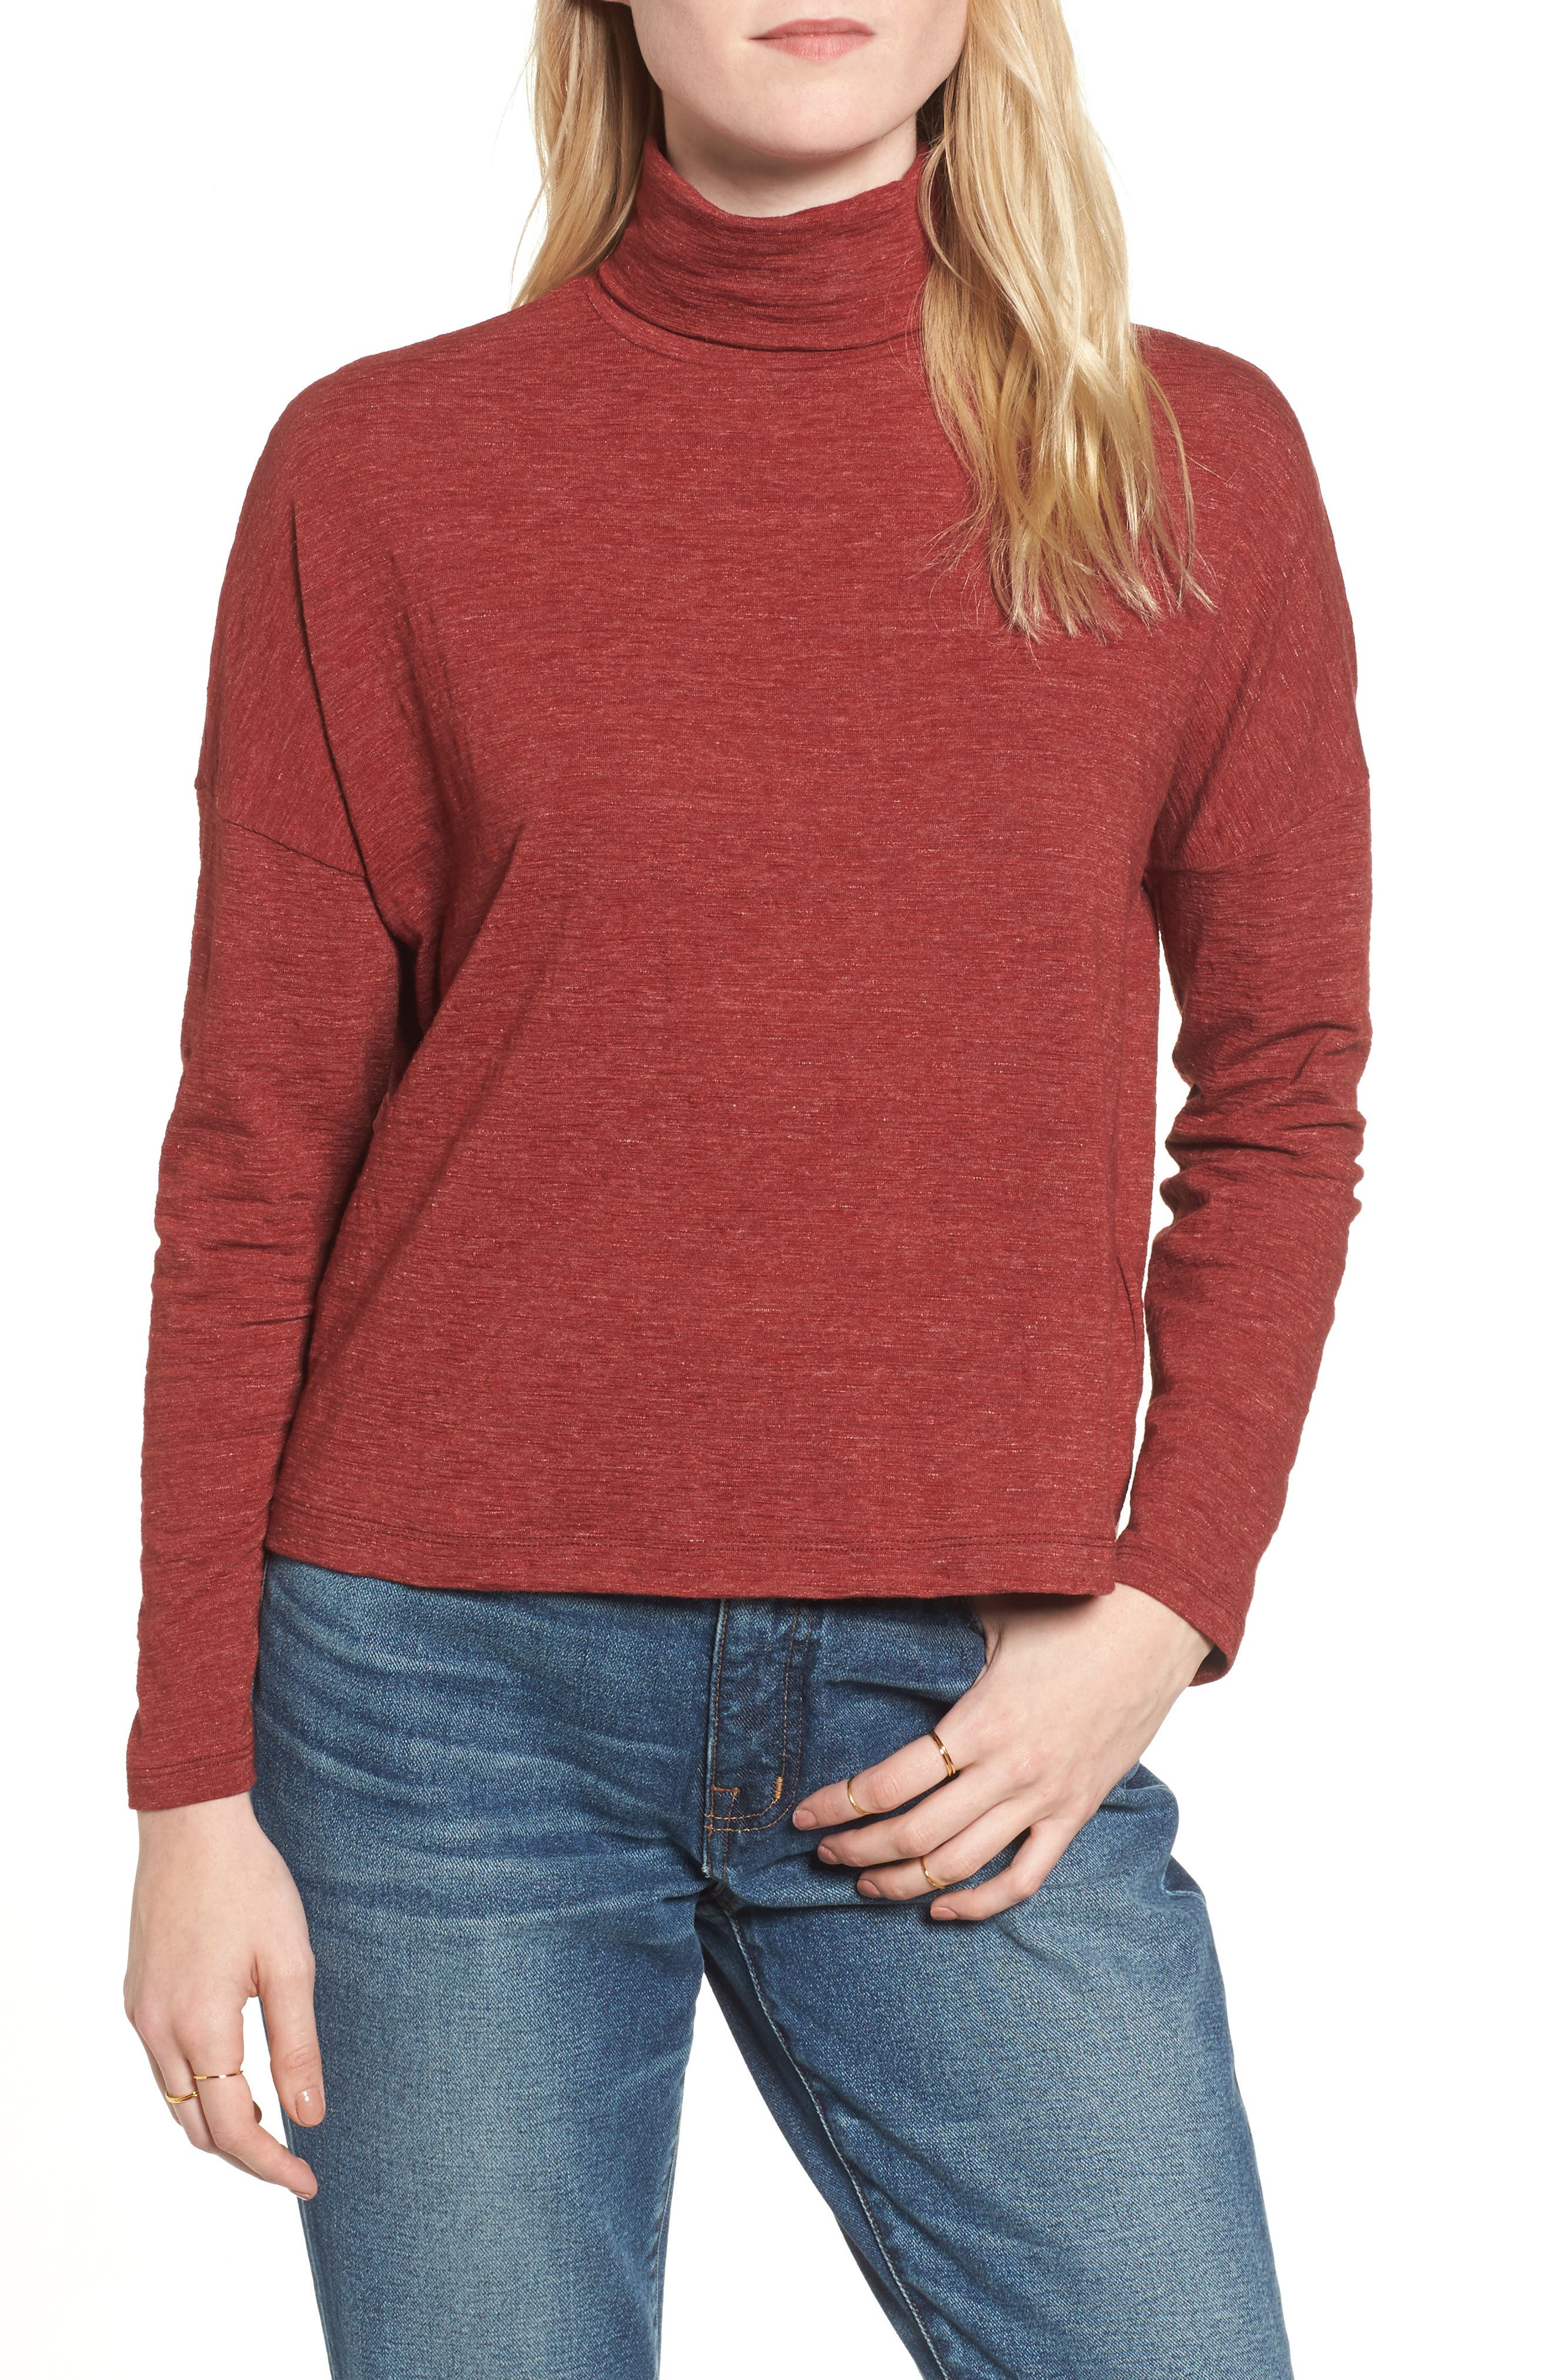 Alternate Image 1 Selected - Madewell Boxy Turtleneck Top